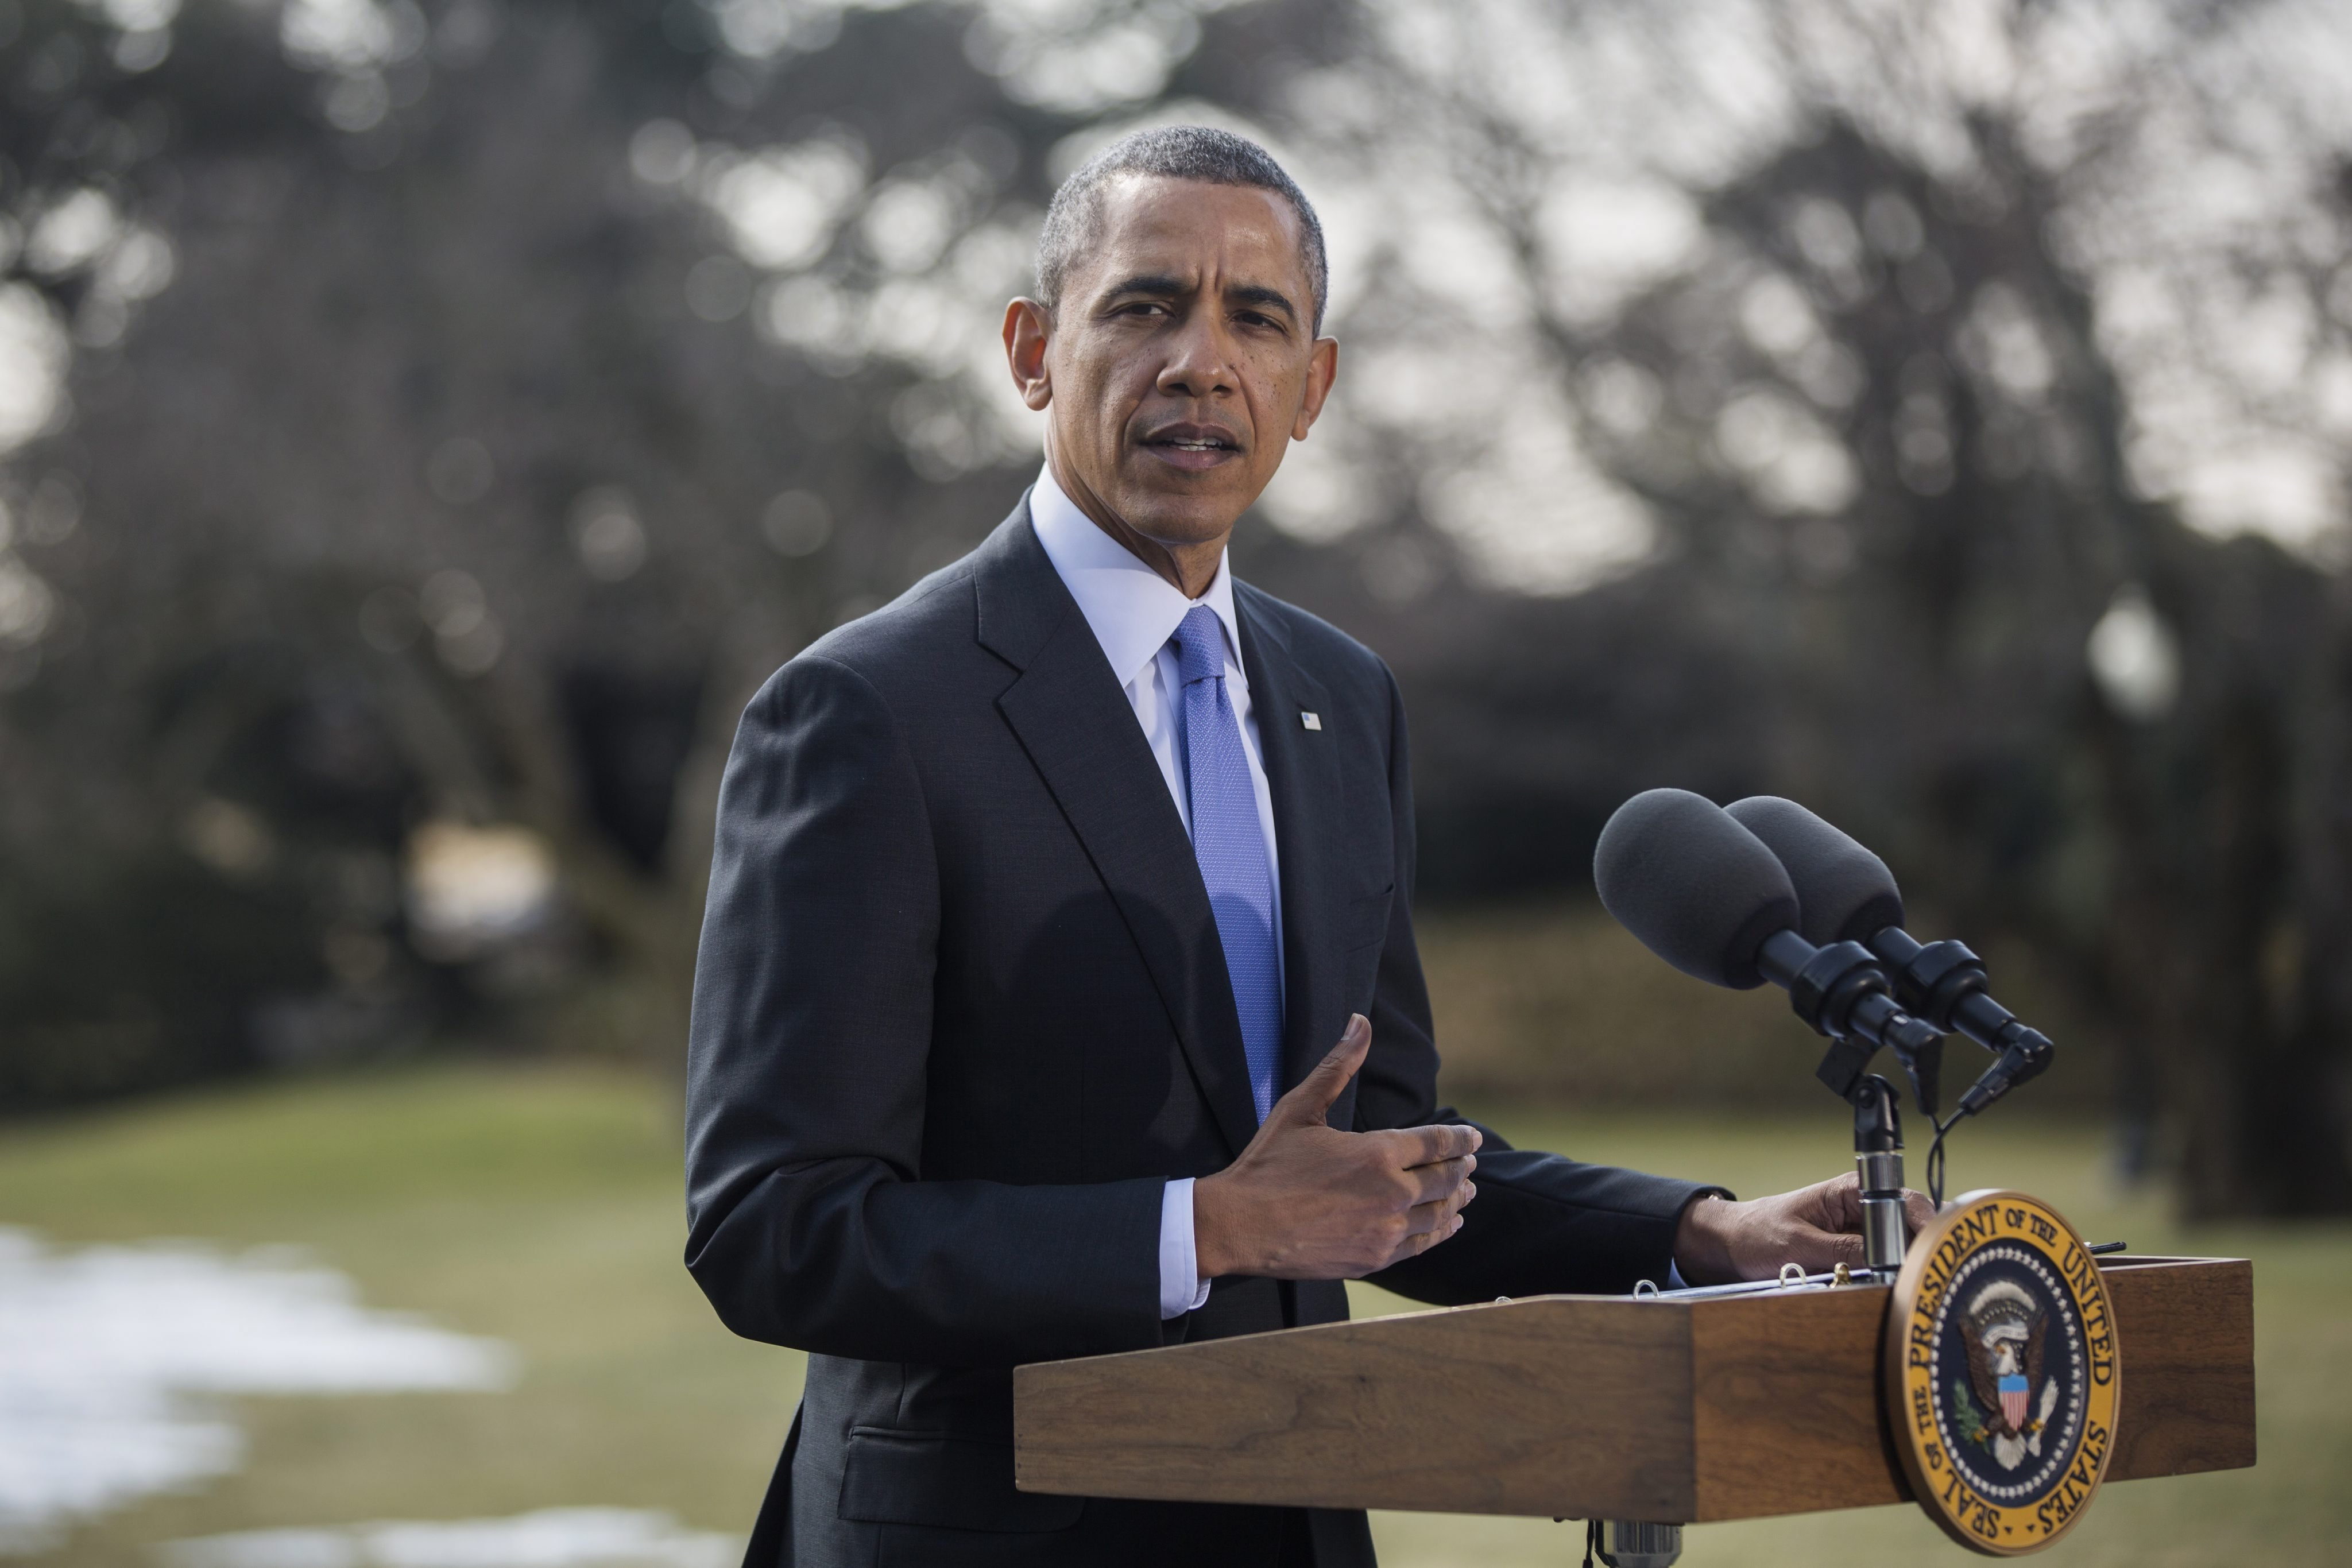 U.S. President Barack Obama announces additional sanctions against Russia on the South Lawn of the White House in Washington, D.C., on March 20, 2014.